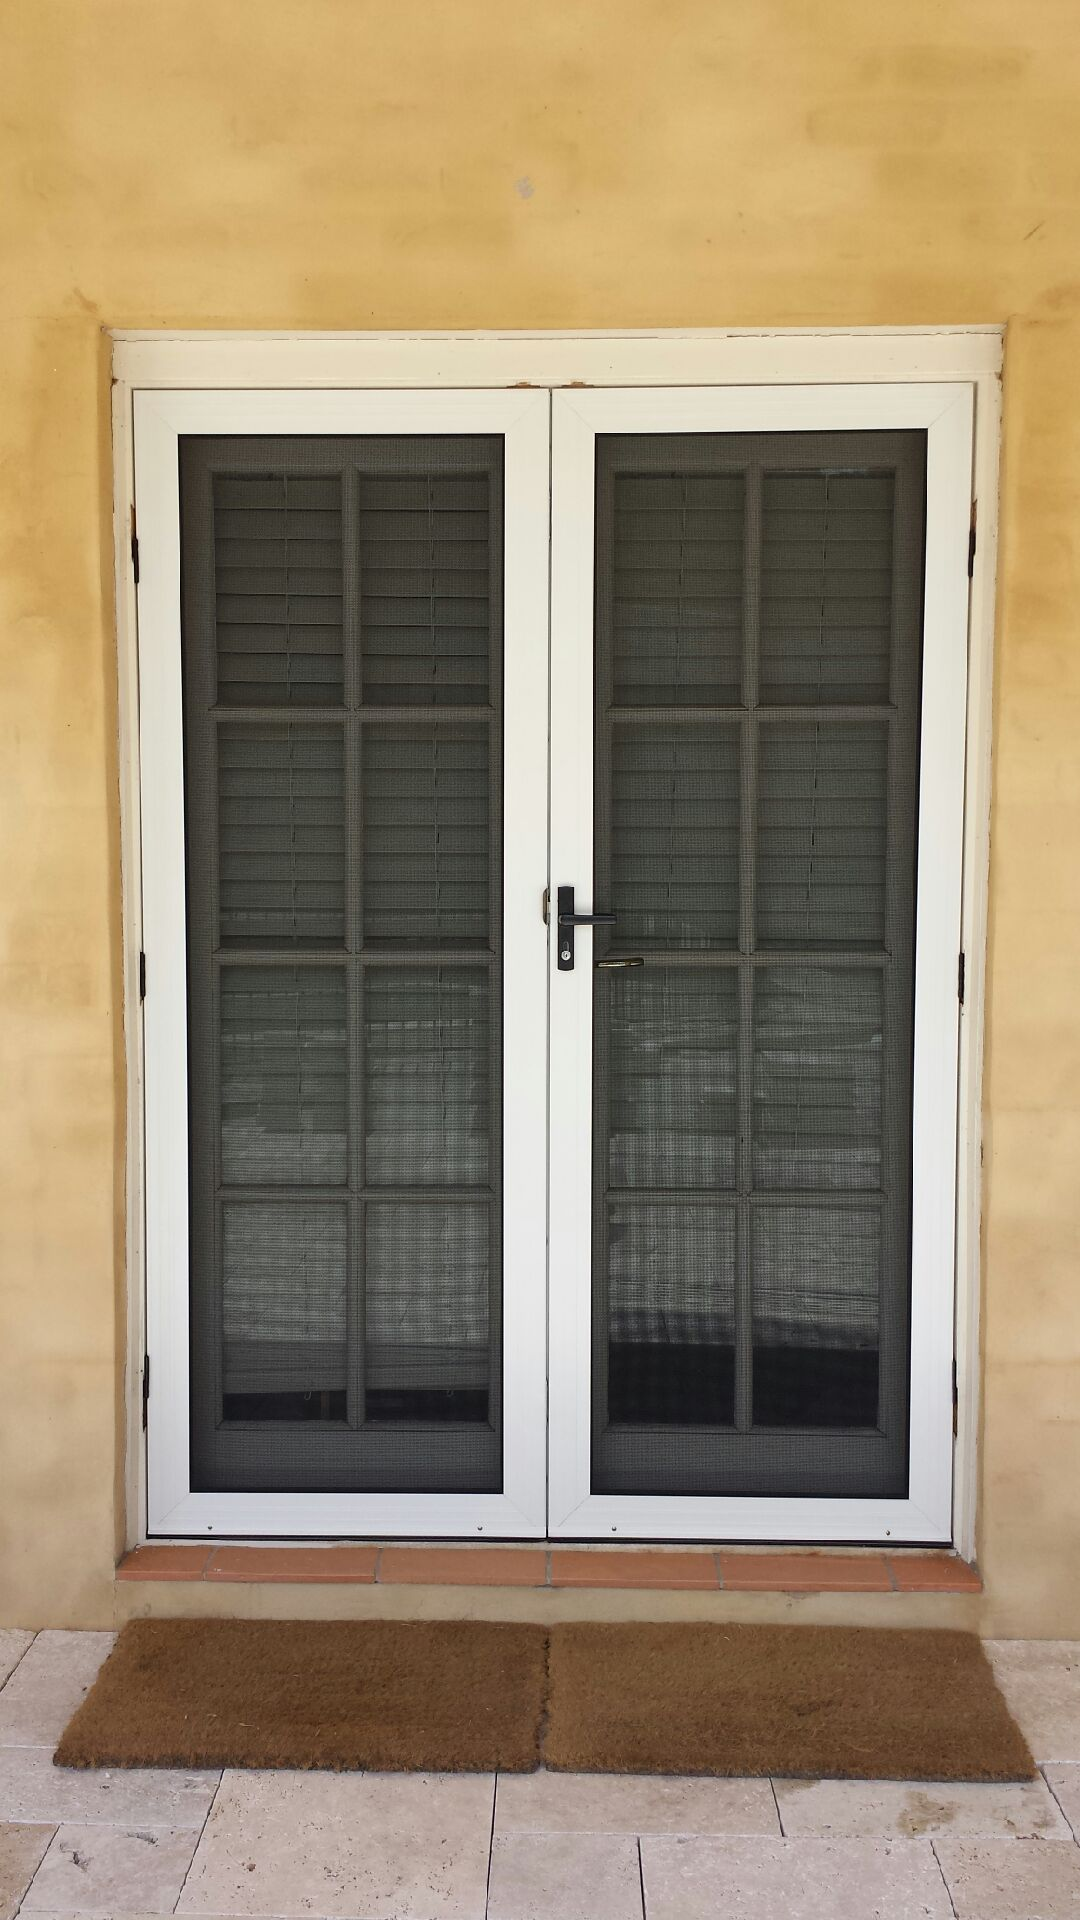 Invisi Gard Stainless Steel Security Products Hunter Valley